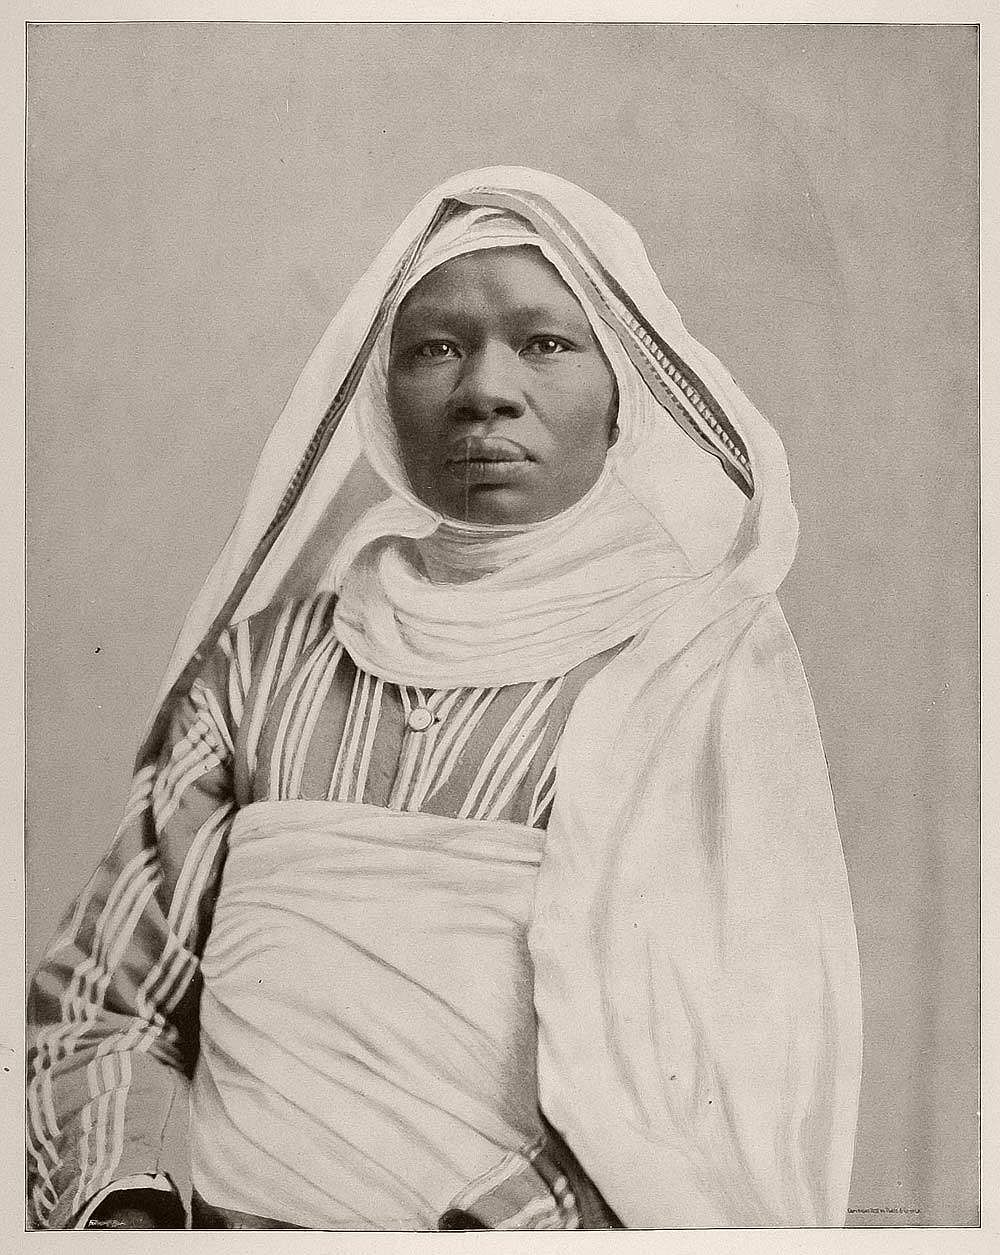 Mahbouba Um Zanuba, a forty-year-old woman from the Sudan who was said to have been the mother of twenty-three children.